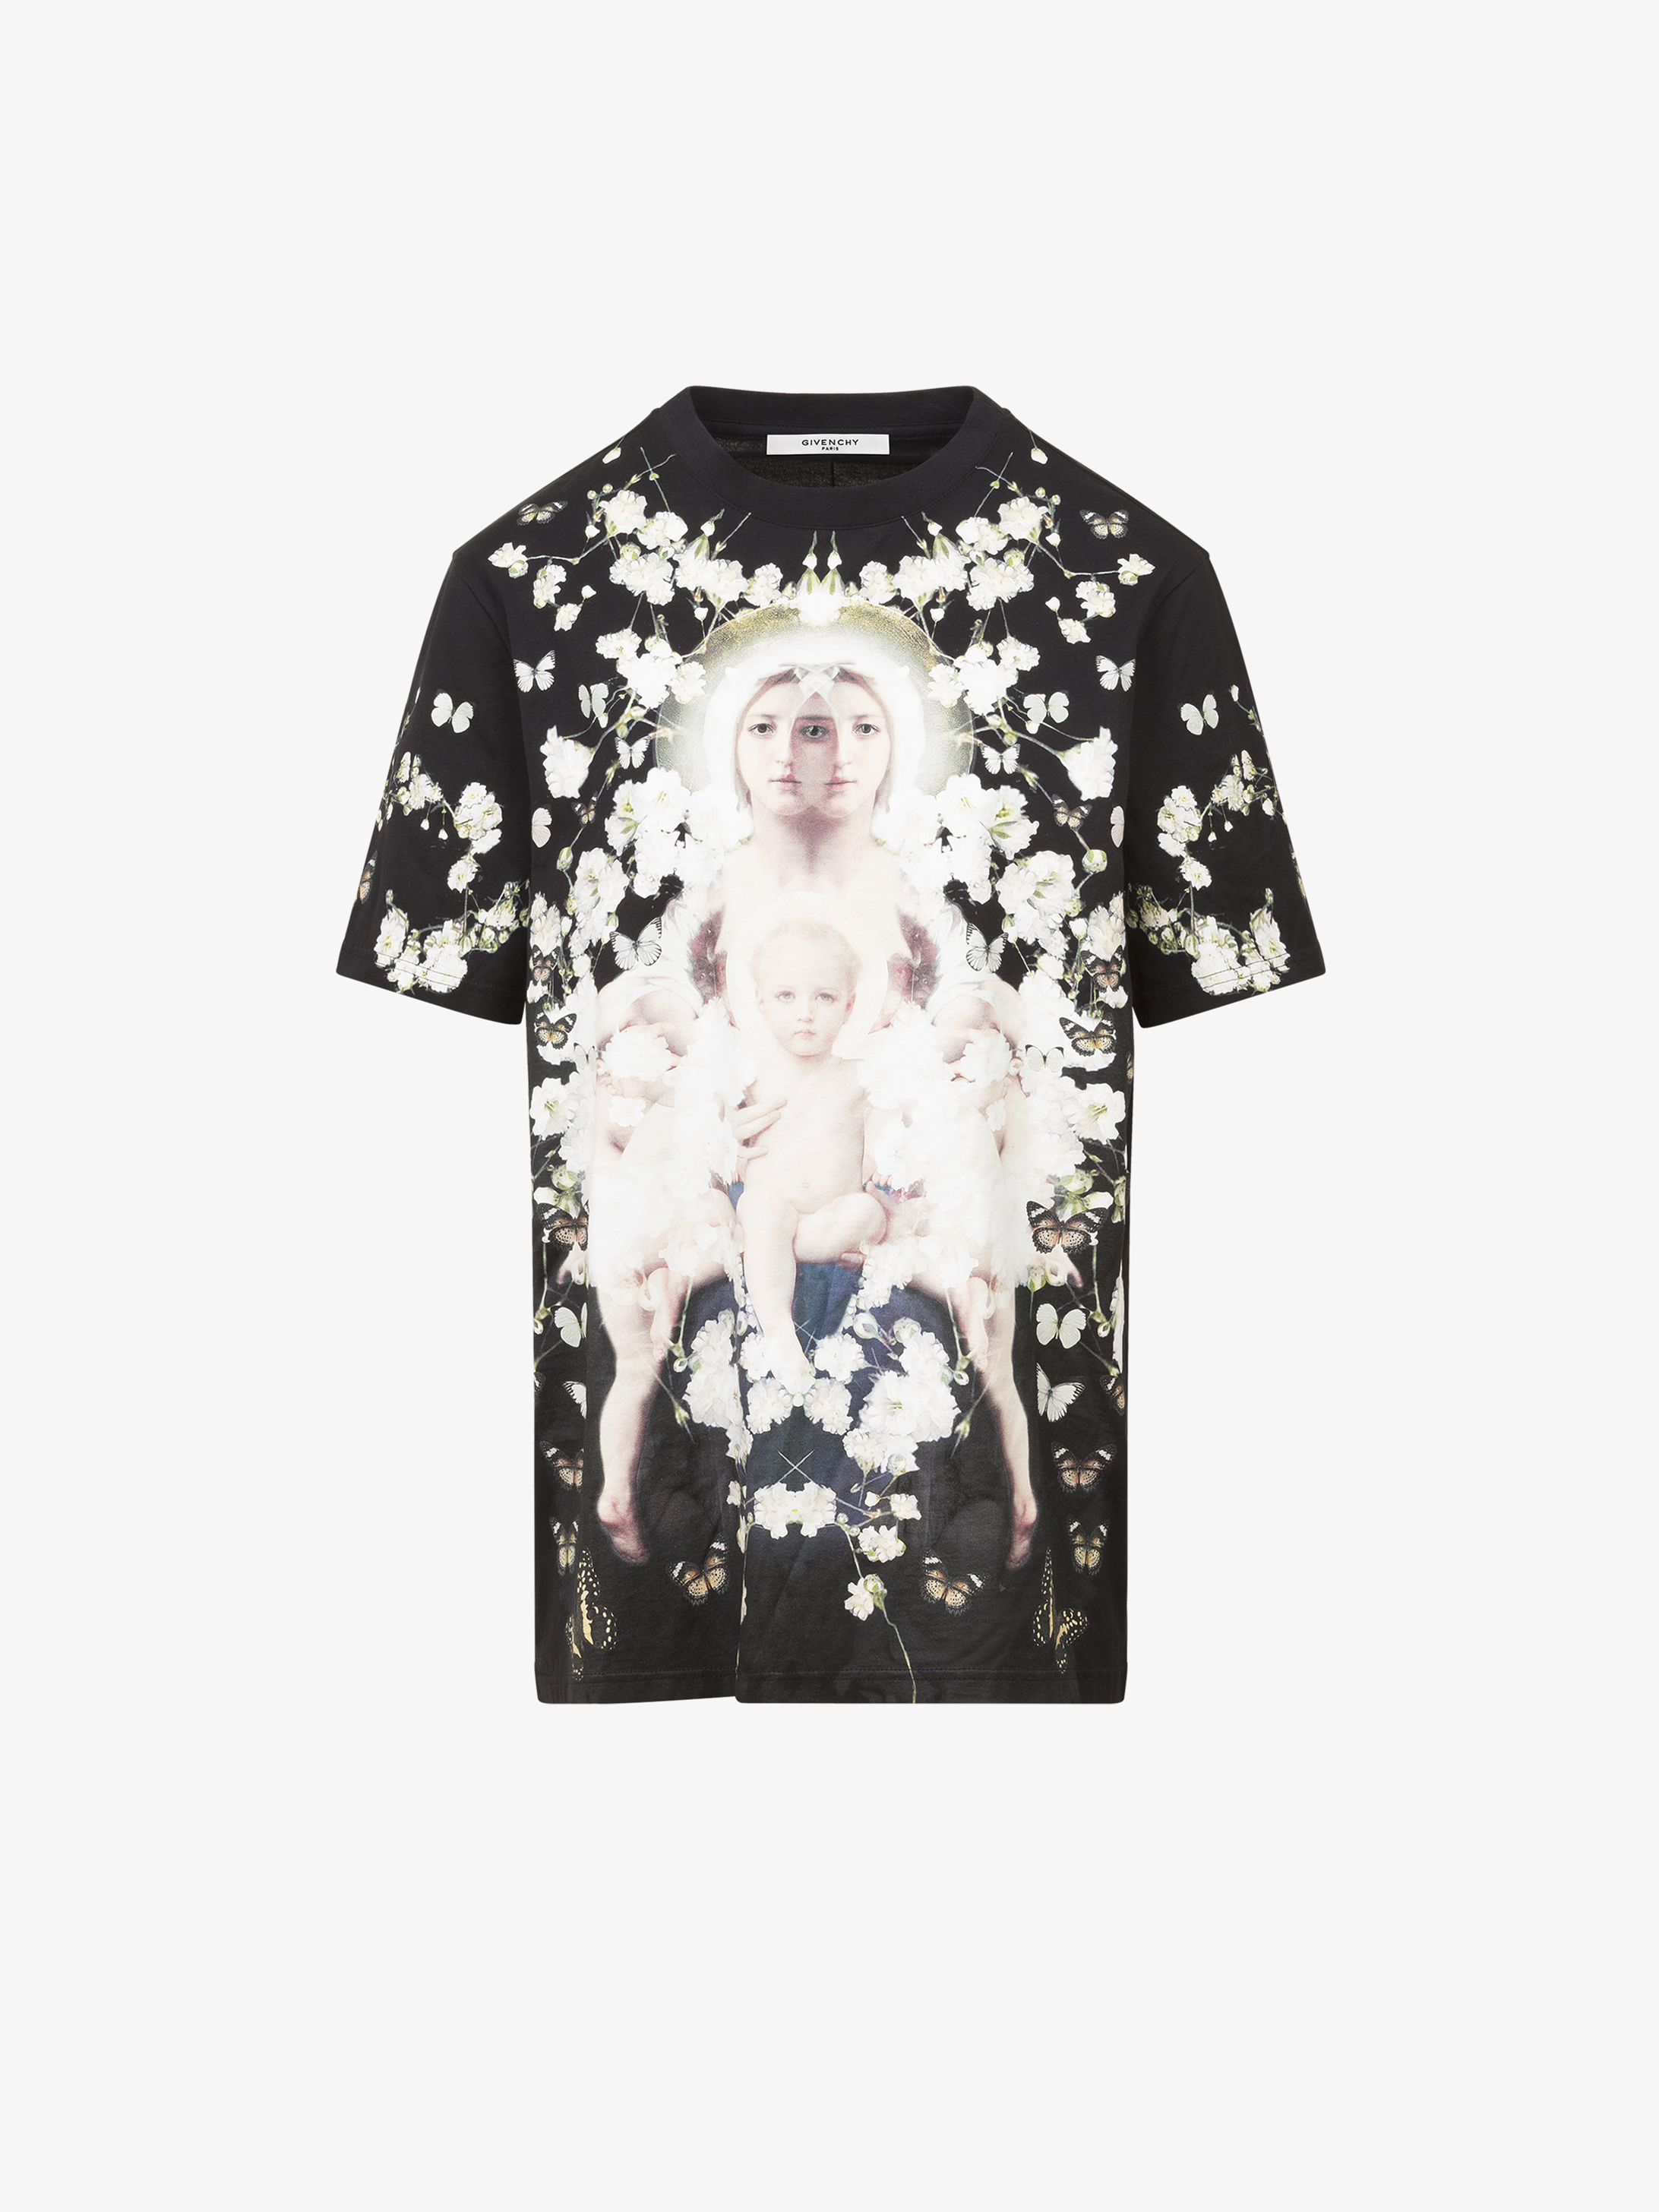 Baby's breath Madonna printed T-shirt